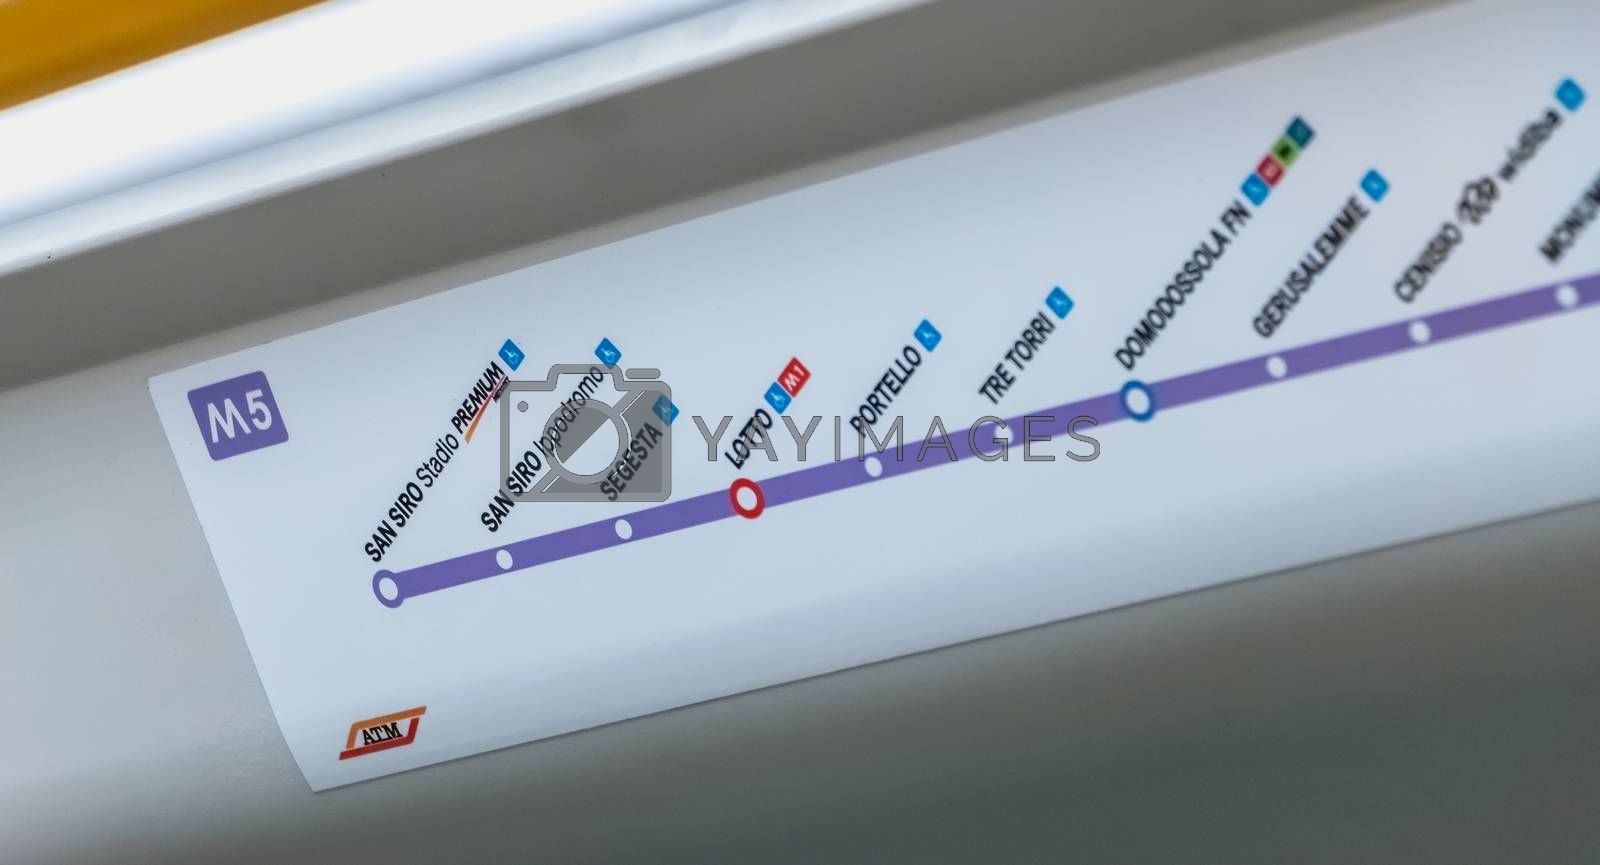 MILAN, ITALY - November 2, 2017: Inside the subway, a map shows the stations of the M5 line on a fall day